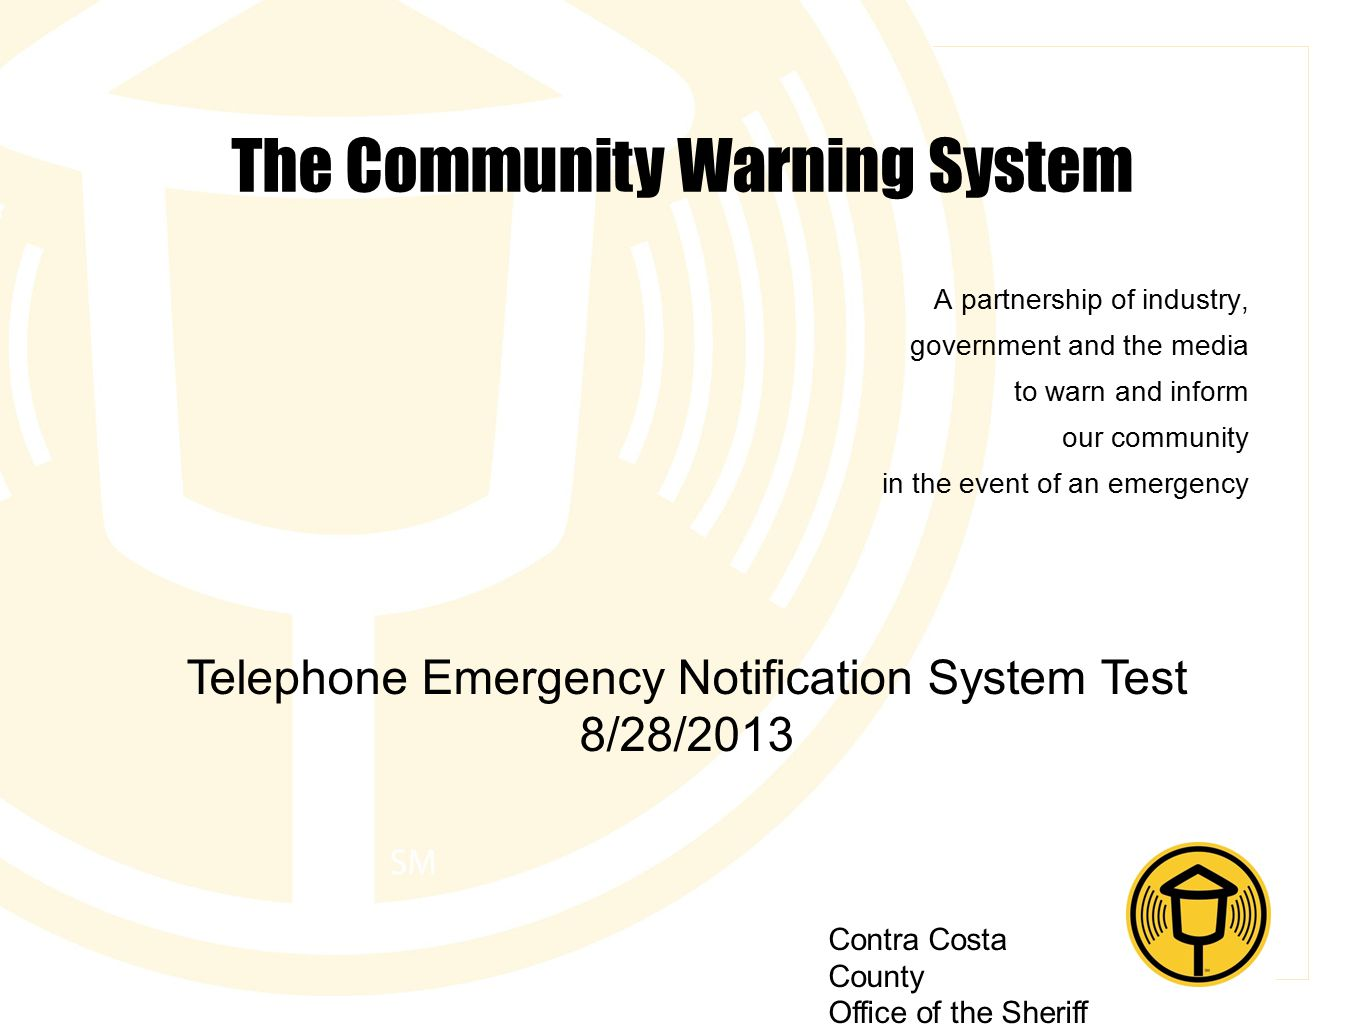 Contra Costa County Office of the Sheriff The Community Warning System A partnership of industry, government and the media to warn and inform our community in the event of an emergency Telephone Emergency Notification System Test 8/28/2013